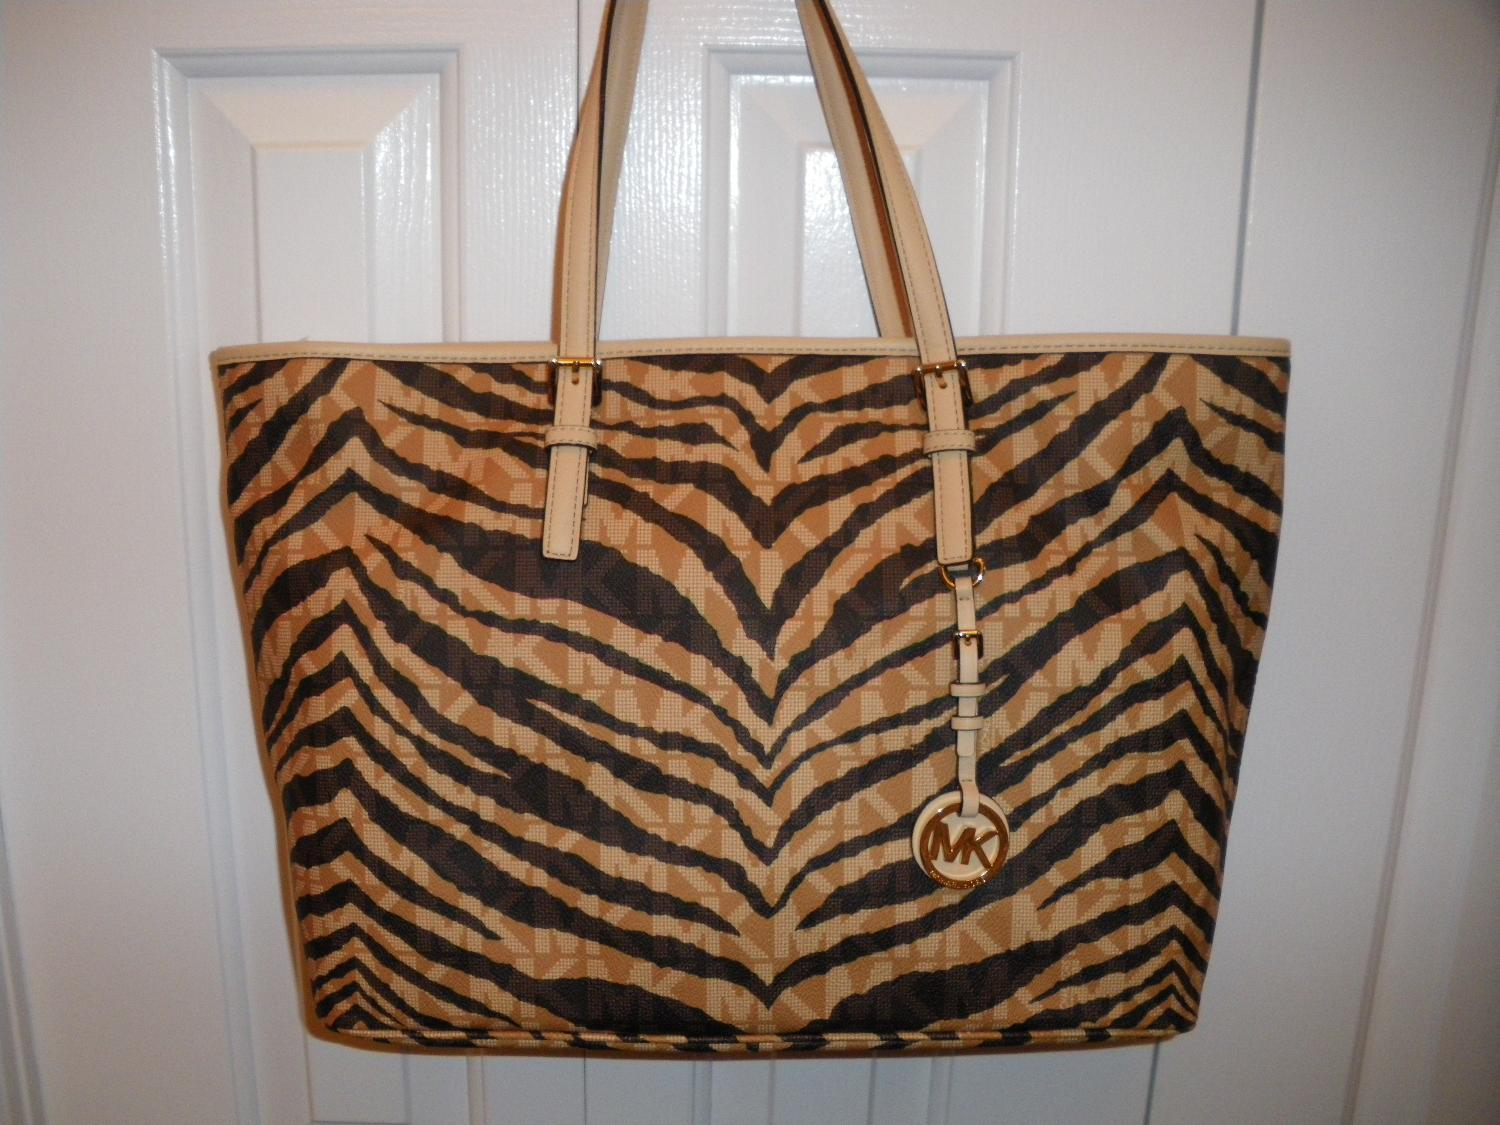 515c8150e93d55 Find more Bnwt Michael Kors Jet Set Brown Tiger Tote for sale at up ...